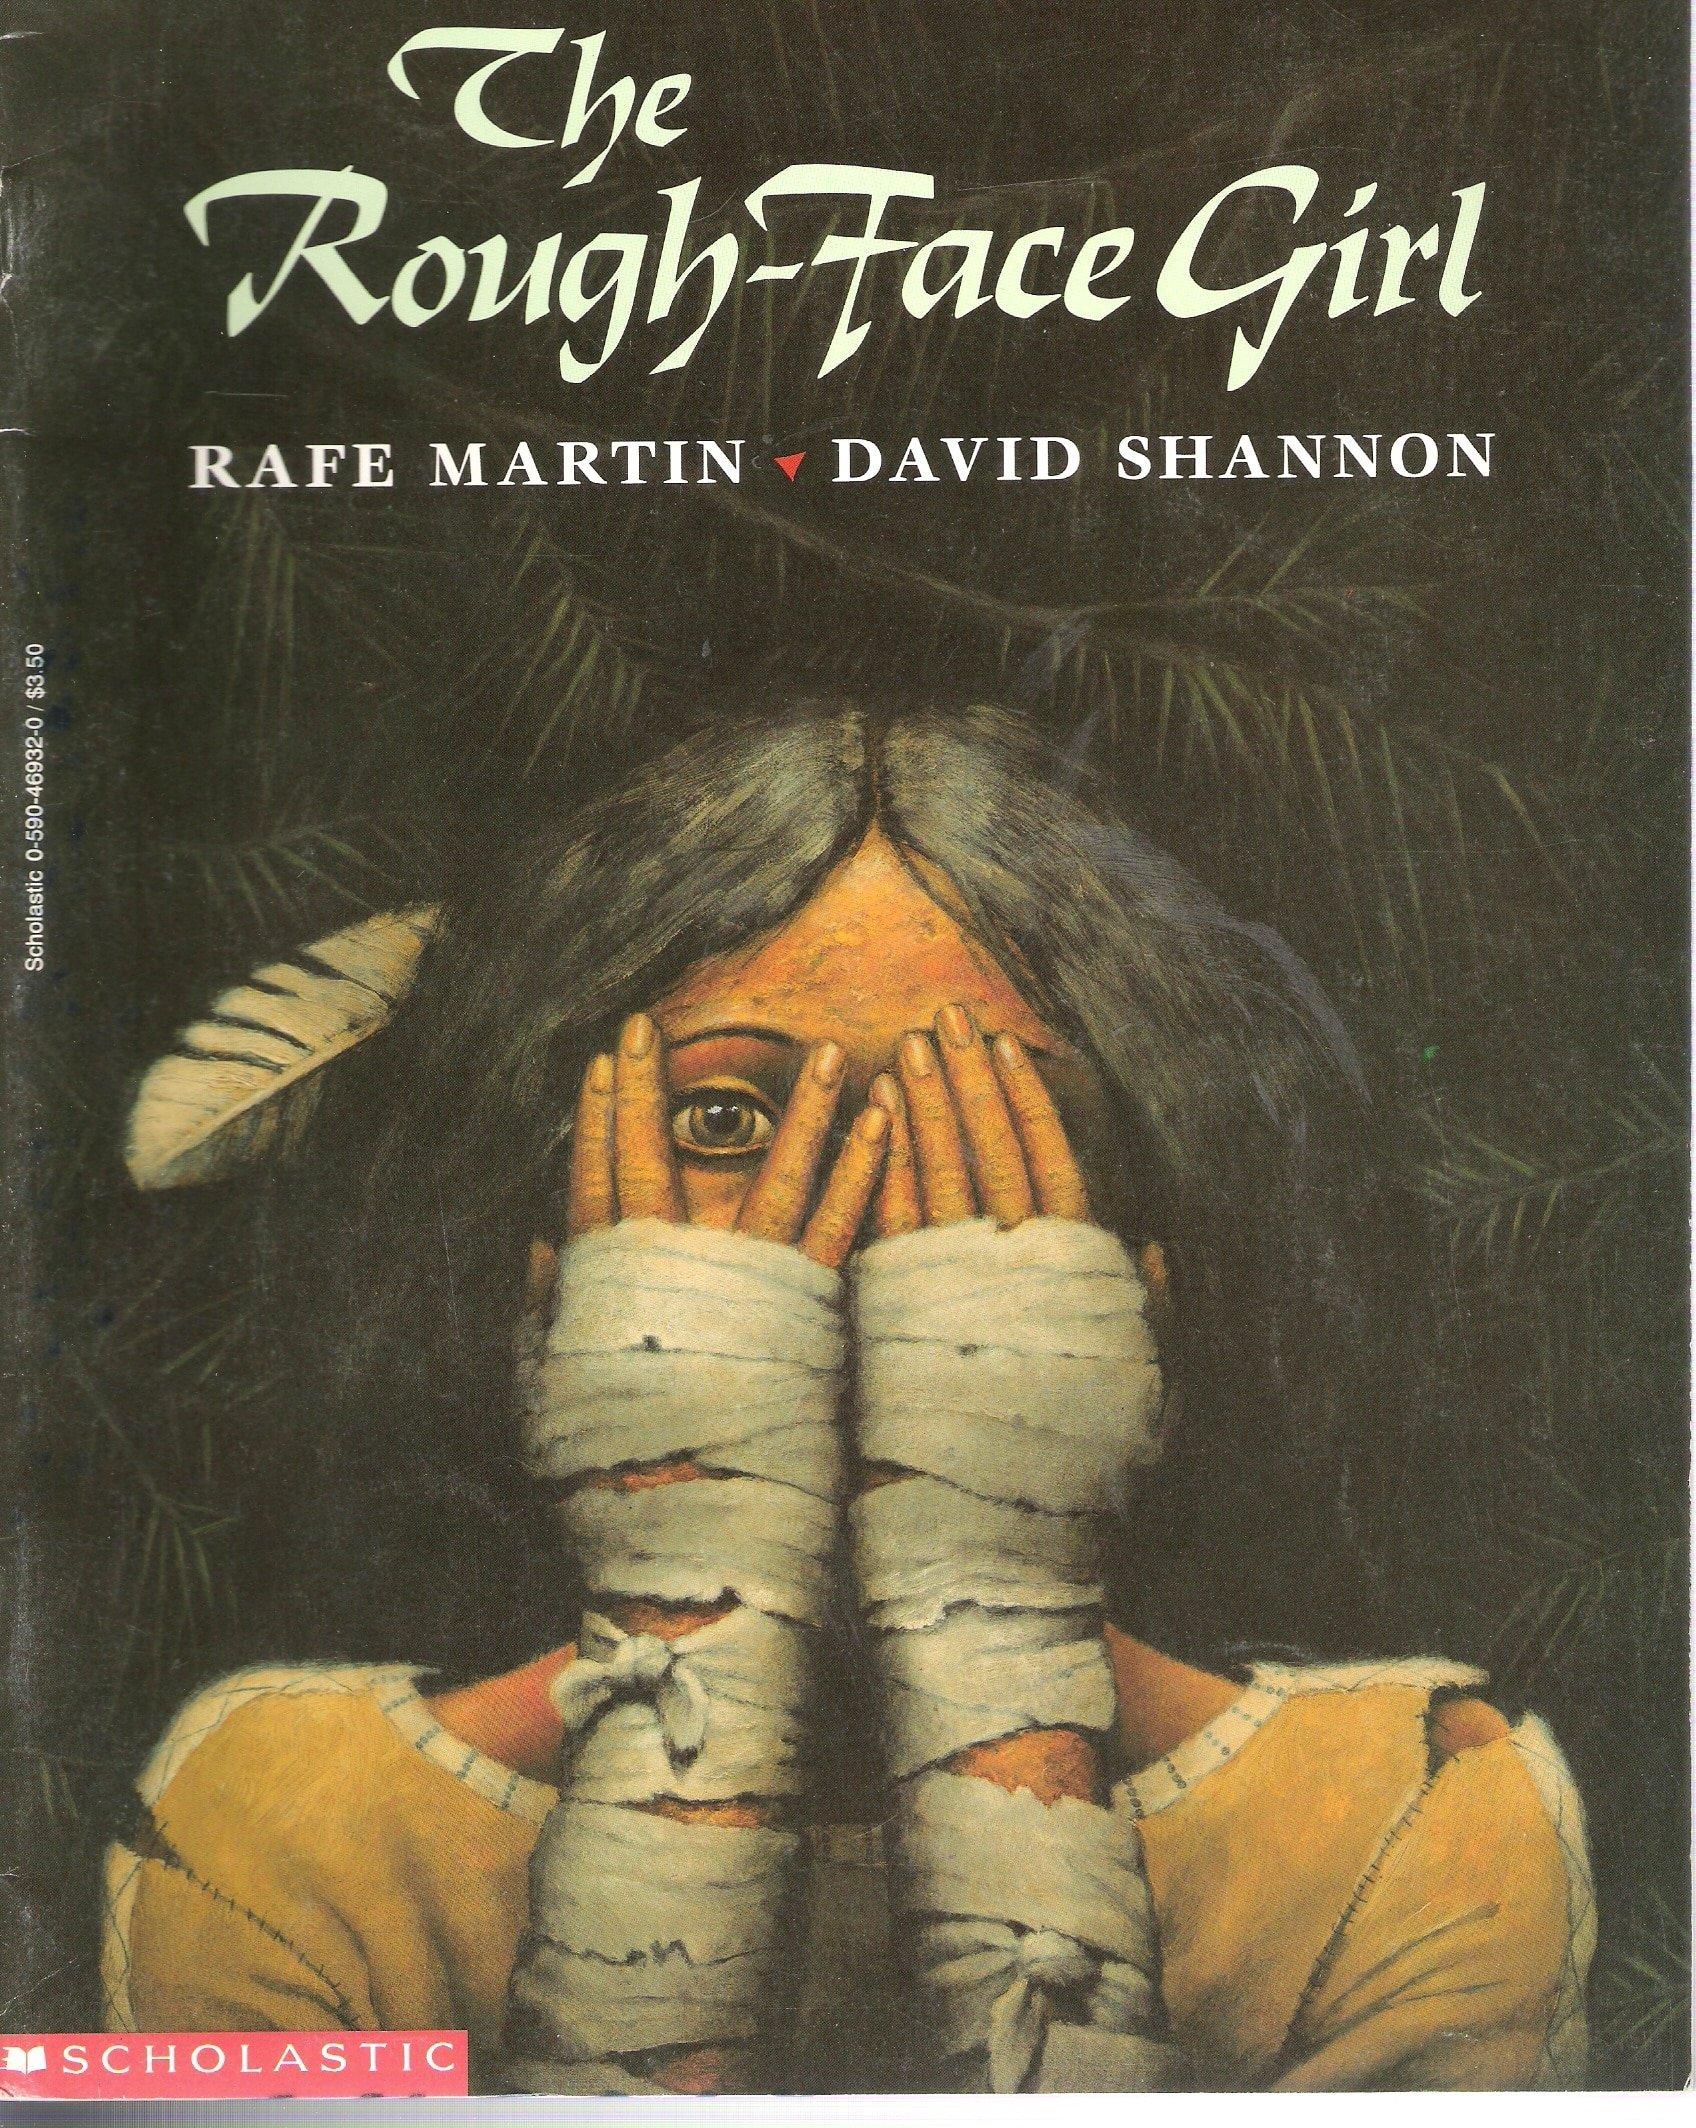 The rough face girl